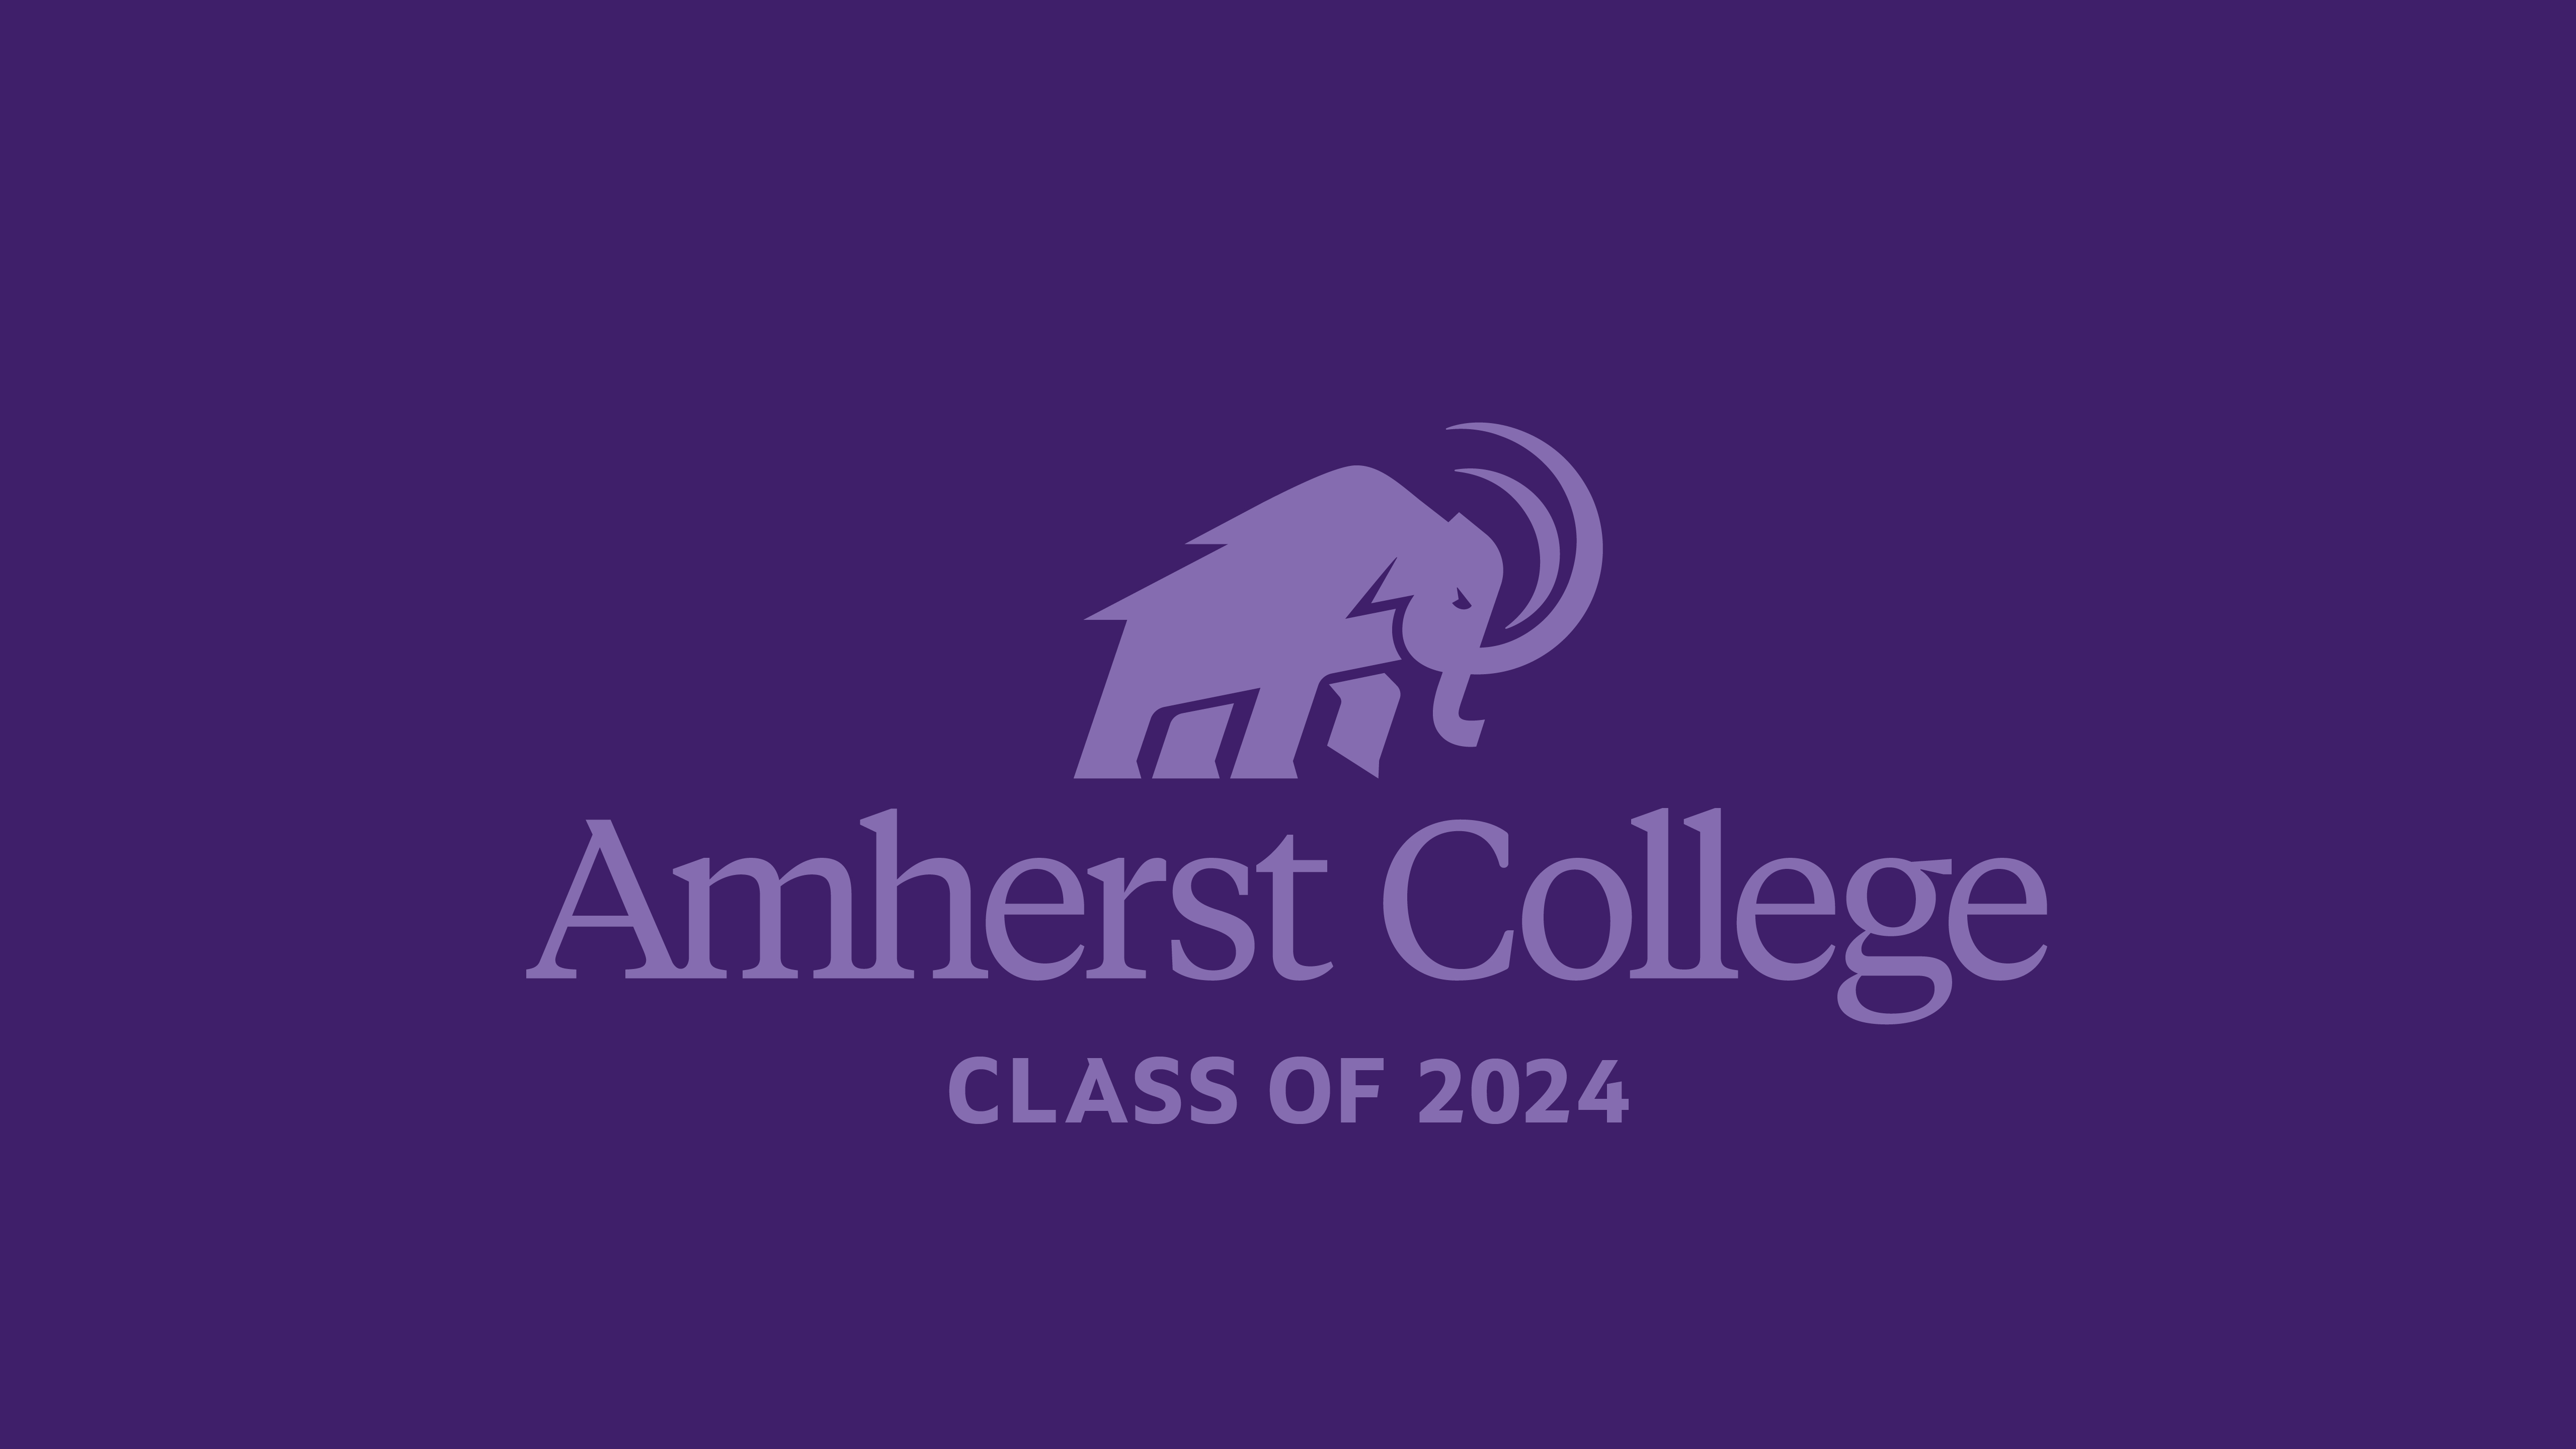 Amherst College Class of 2024 purple background with mammoth